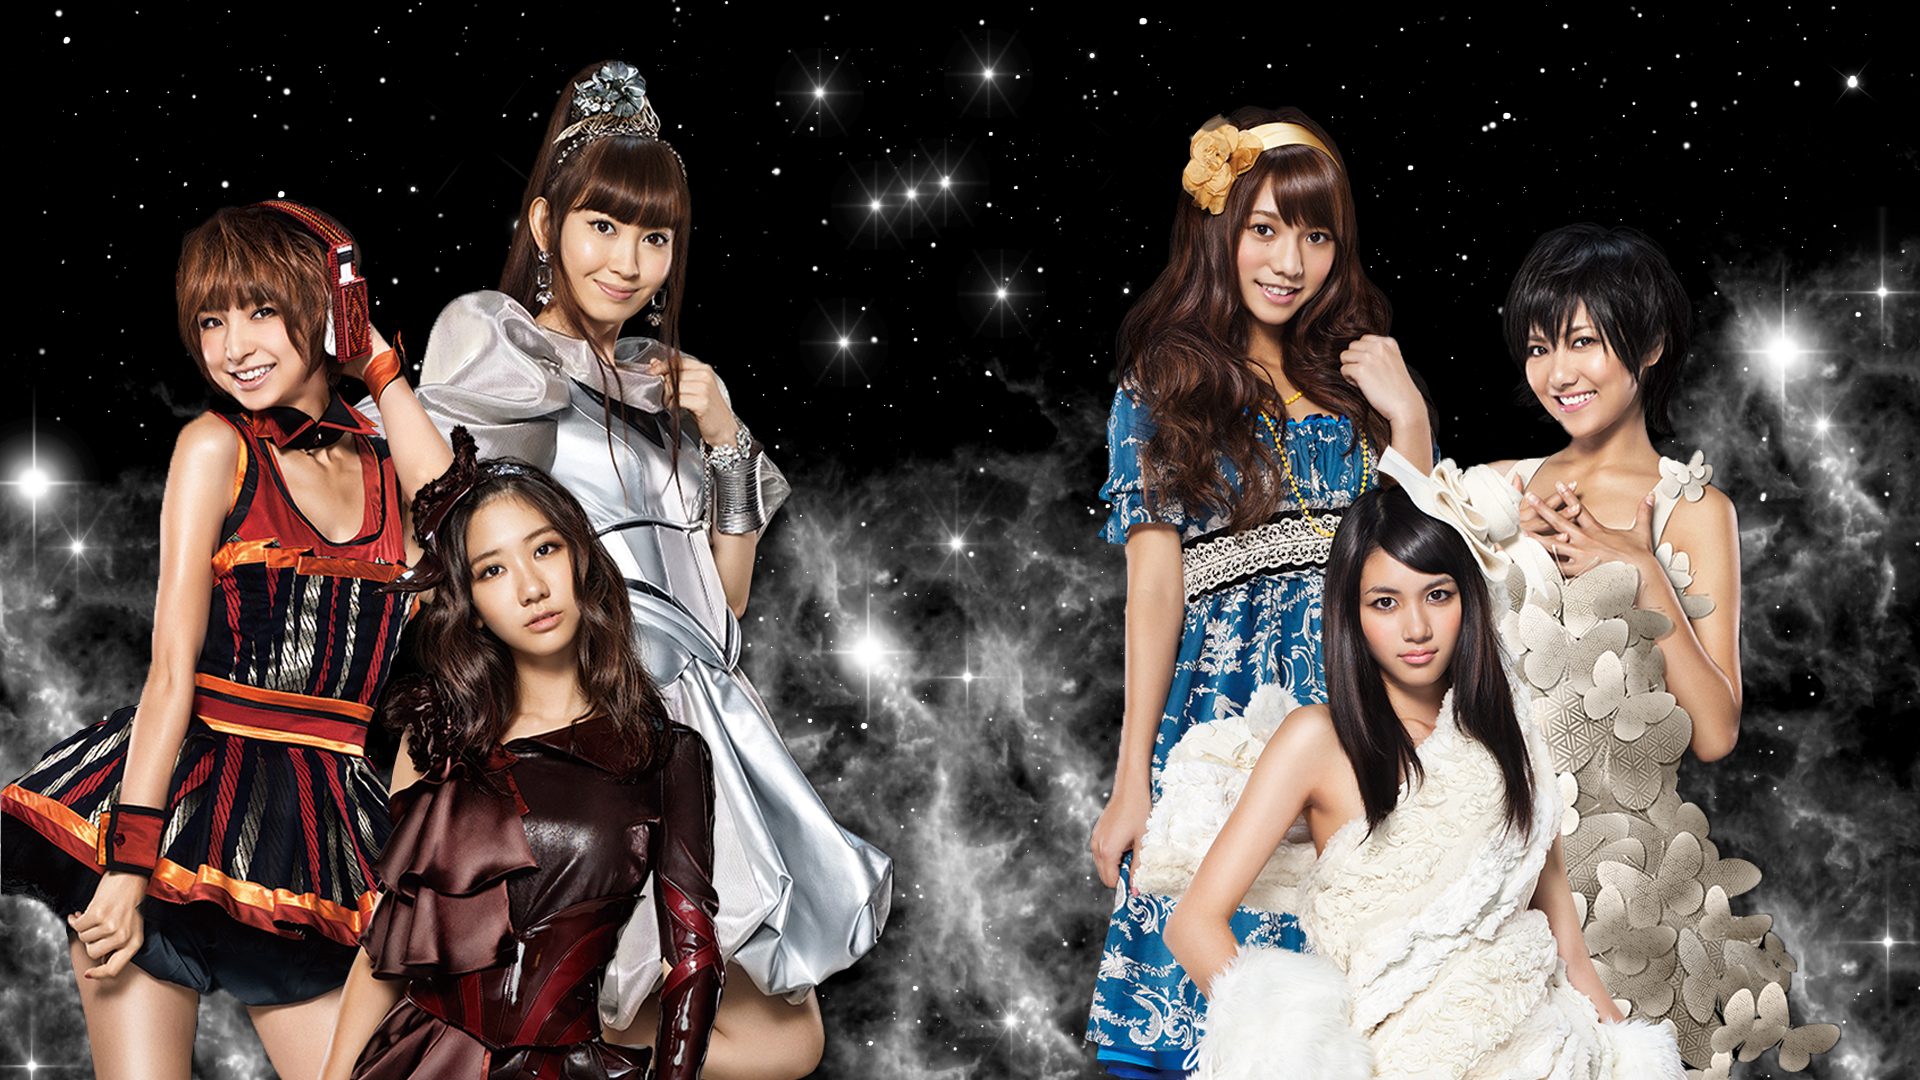 AKB48 To Appear In FFXIII-2